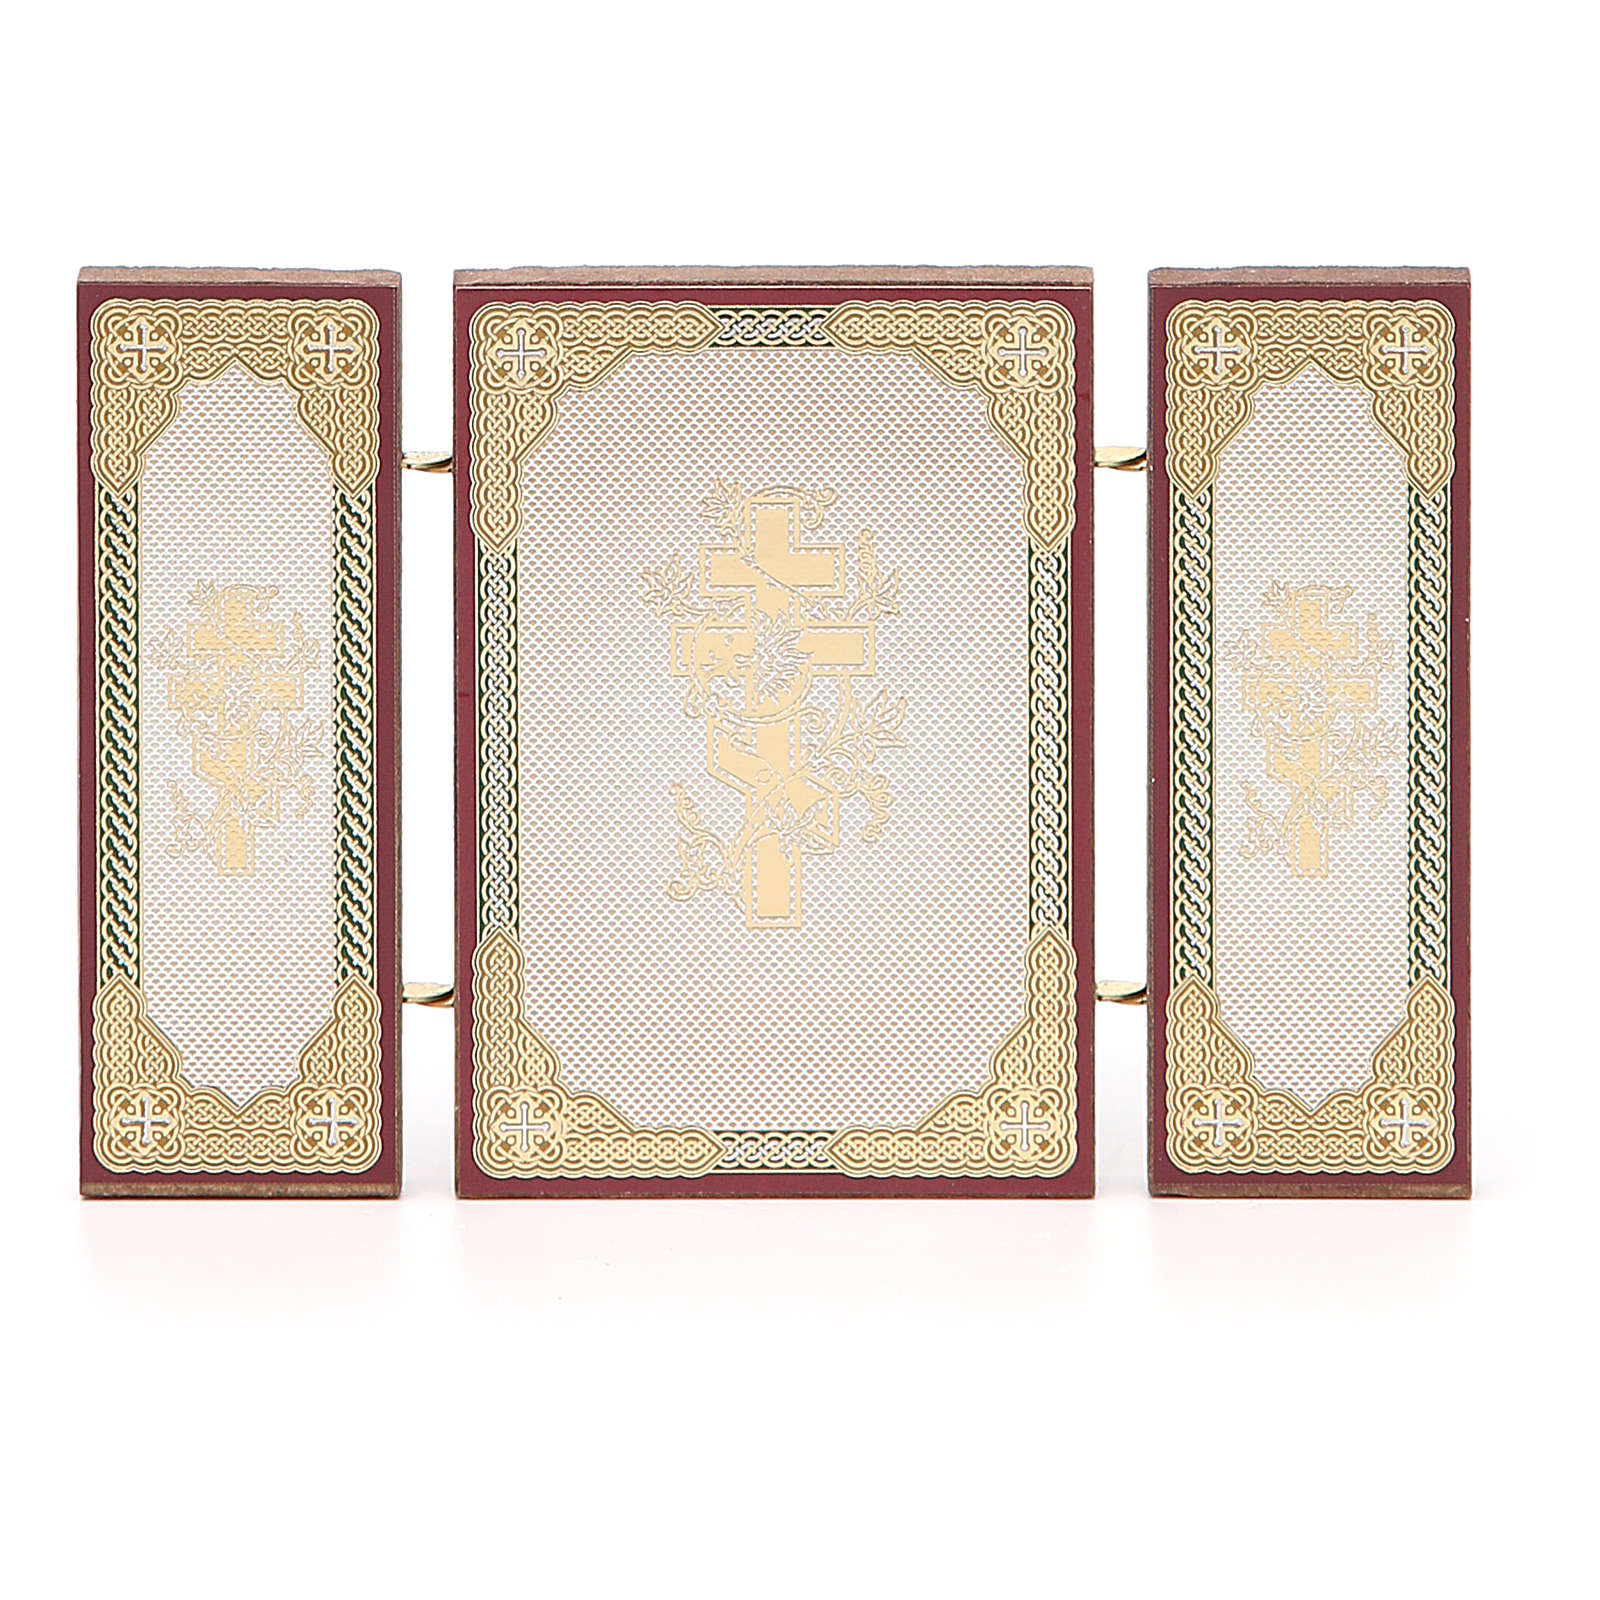 Triptych Russia Holy Family application 13x8cm 3